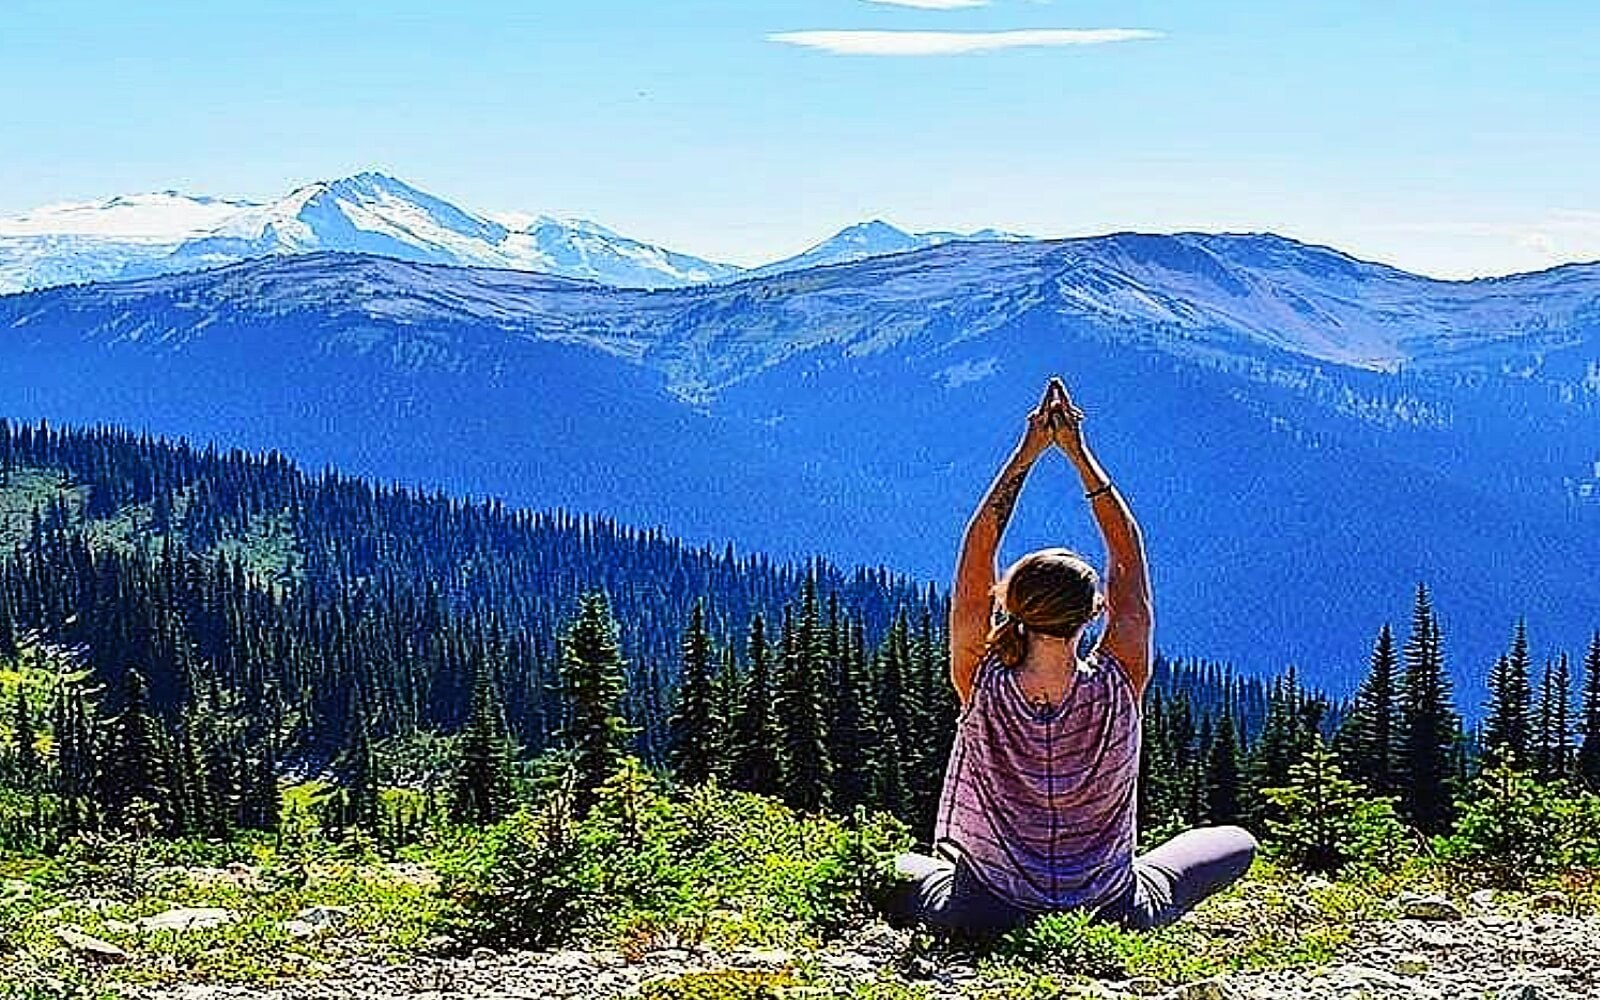 A woman does yoga in the mountains